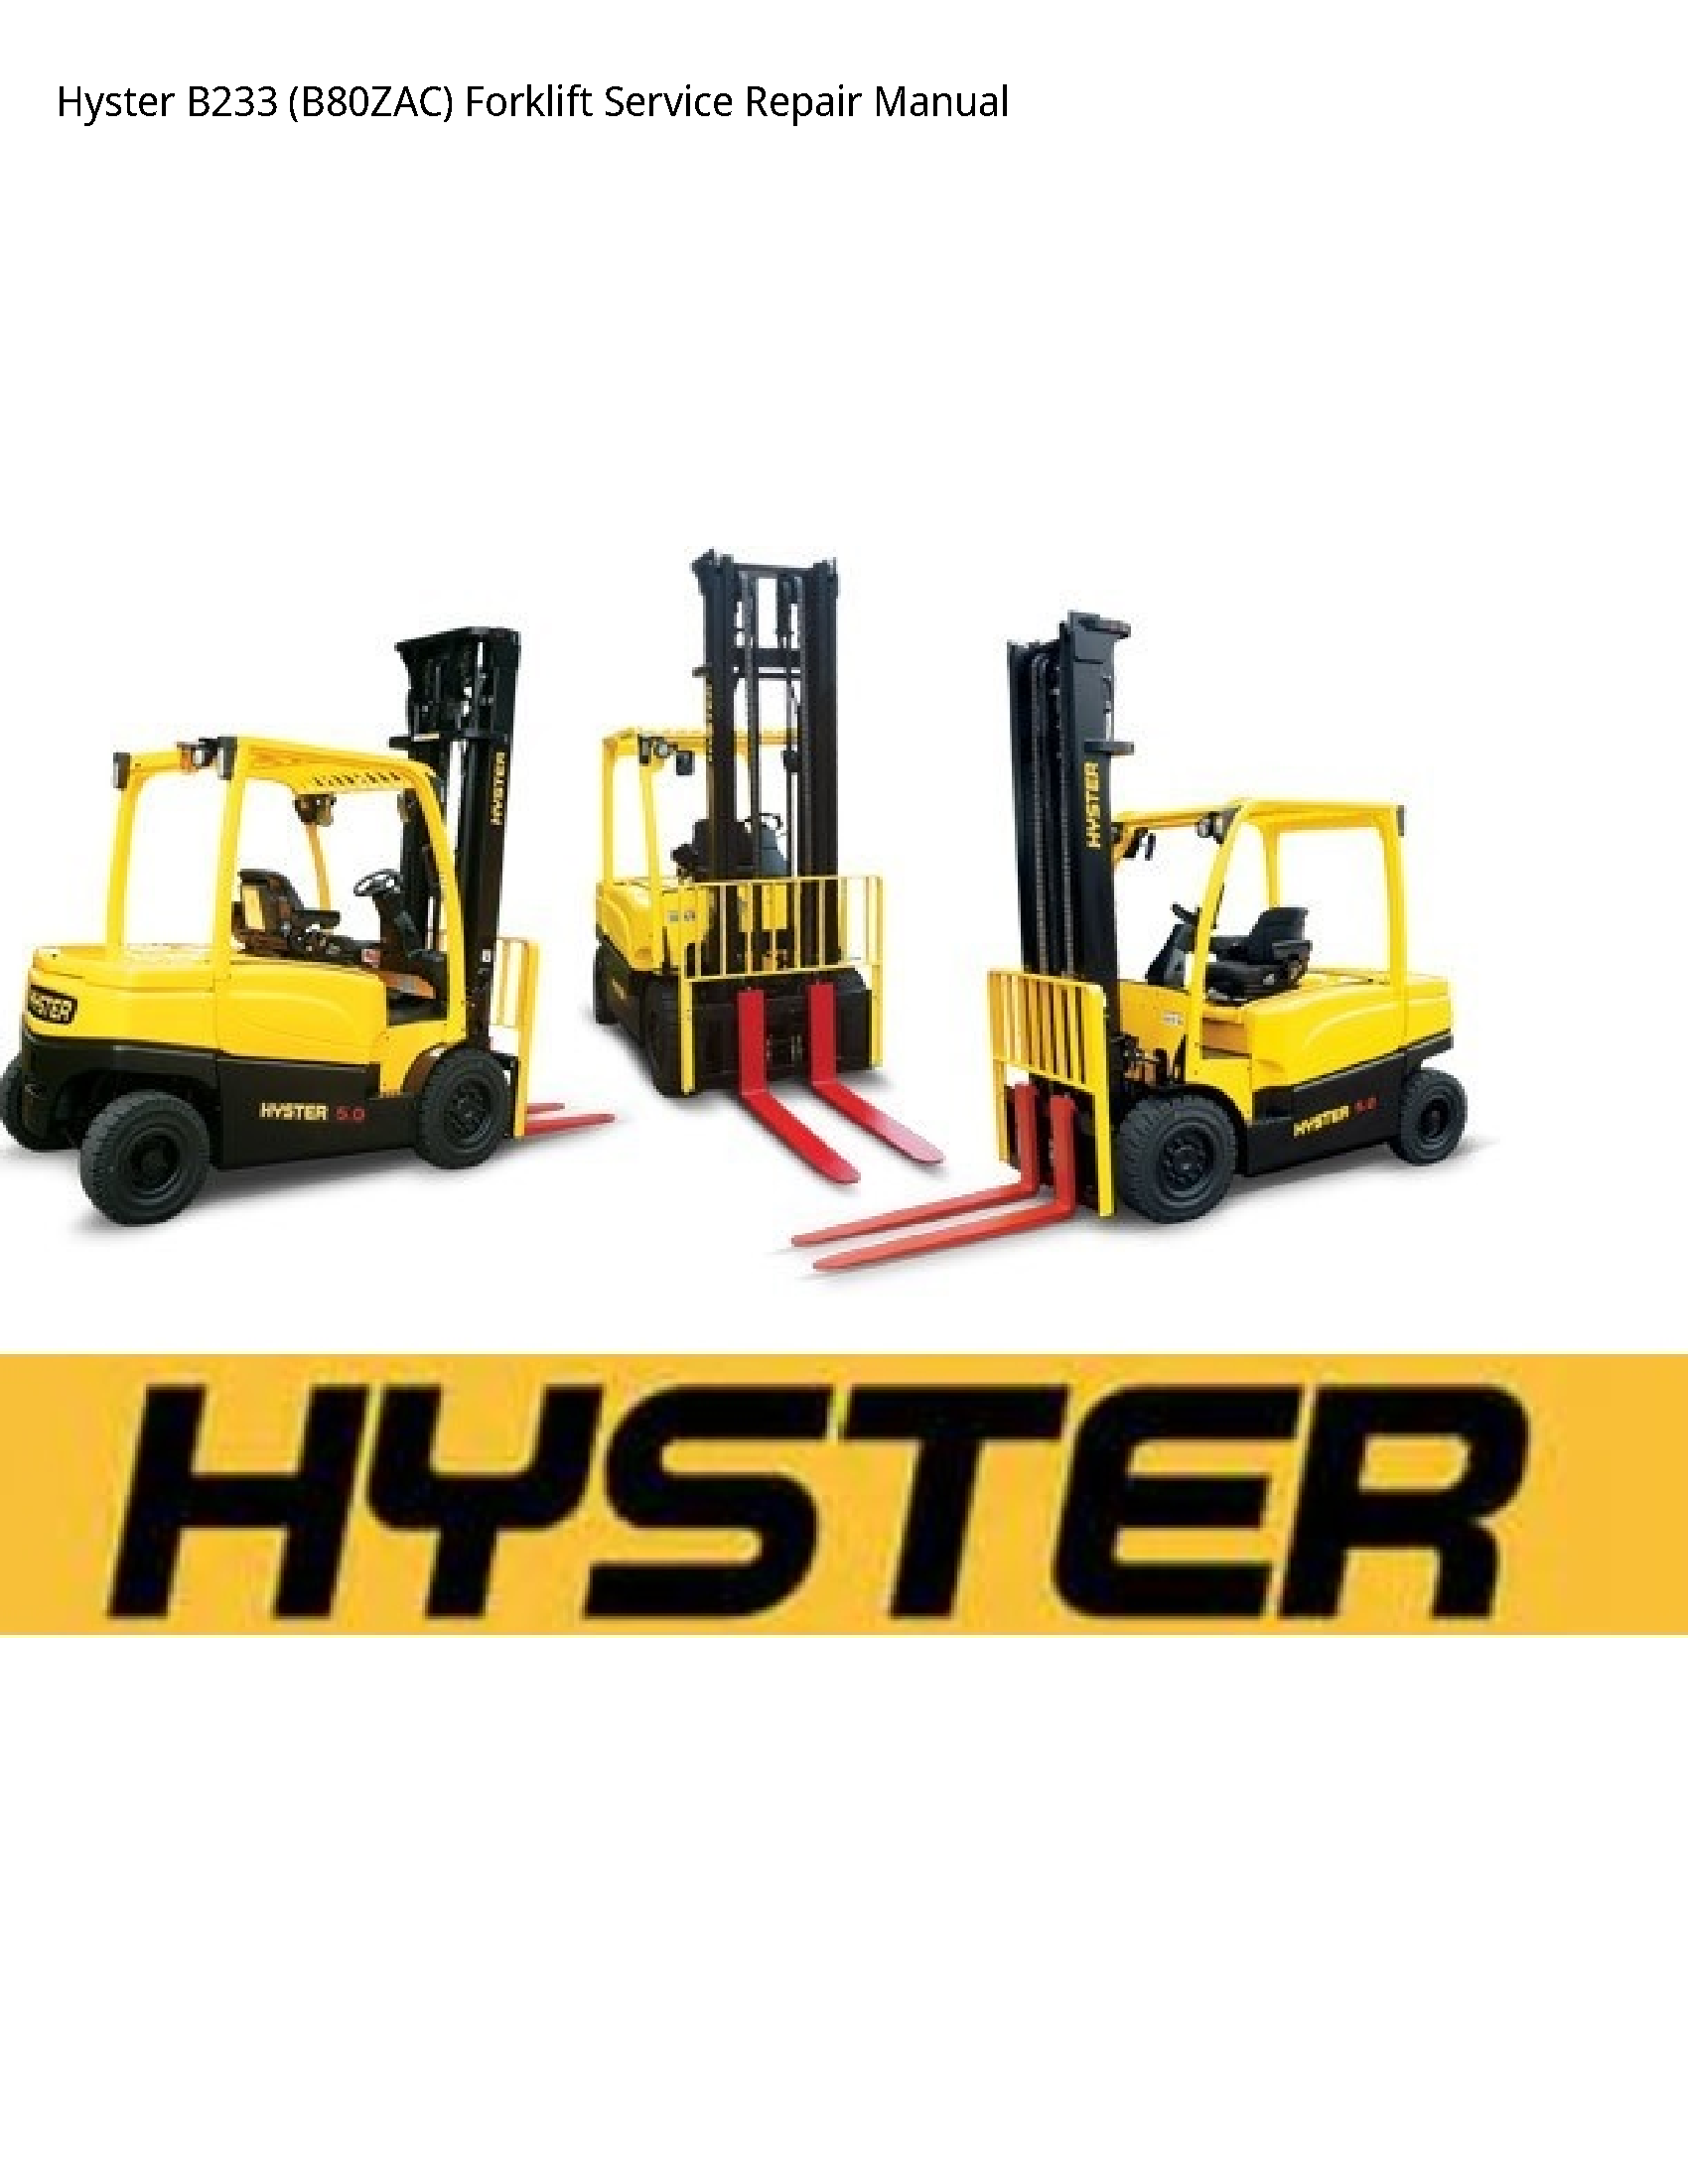 Hyster B233 Forklift manual